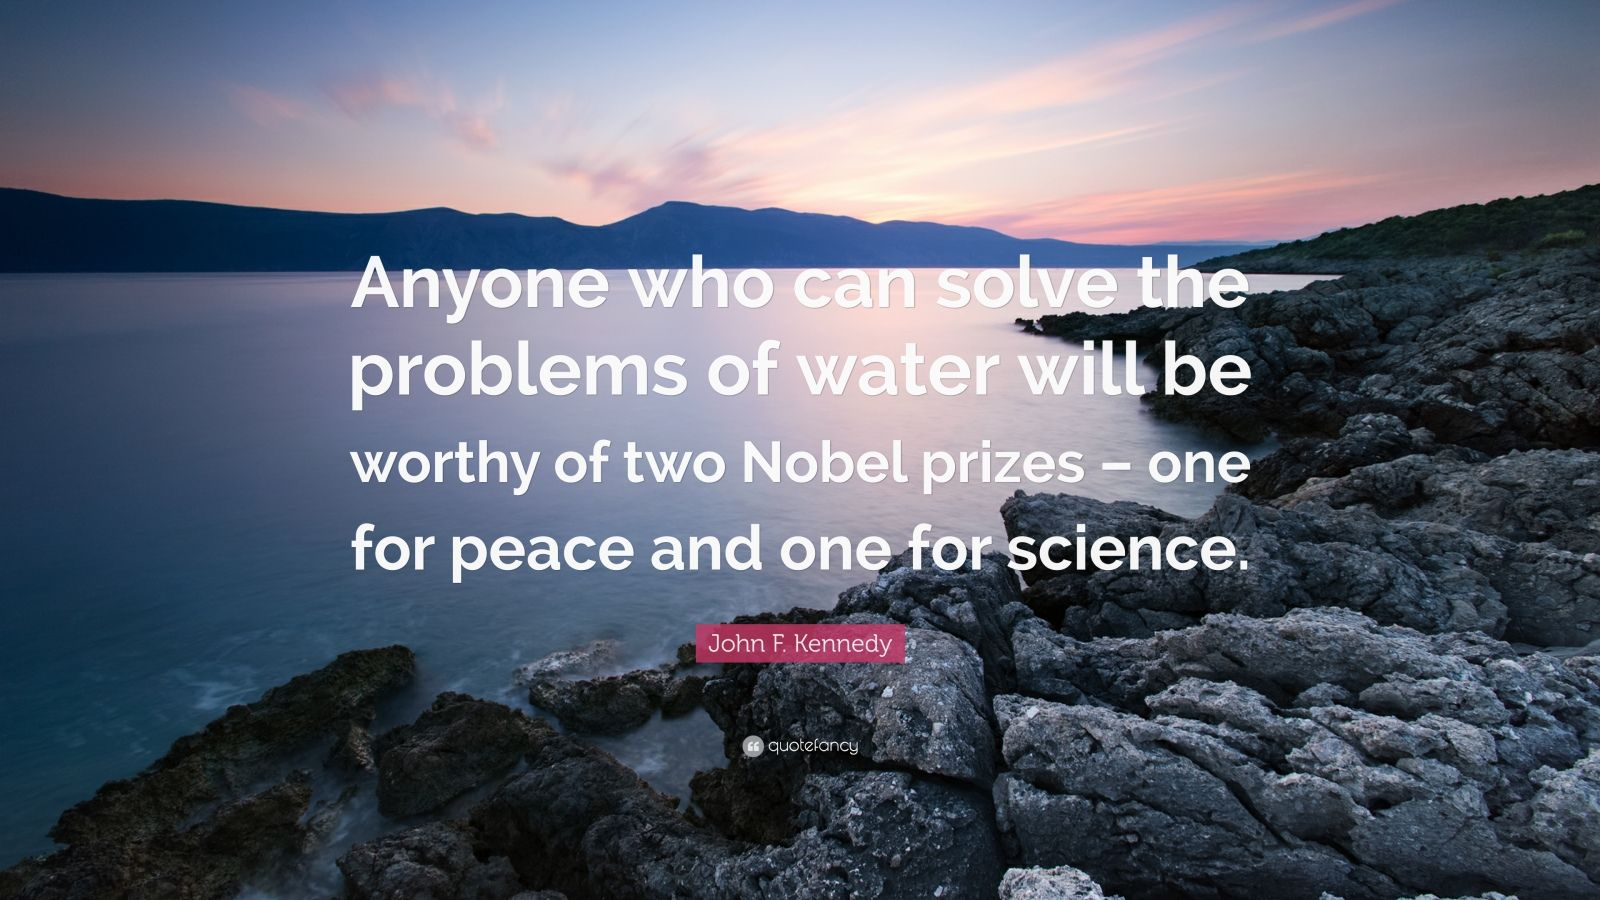 """John F. Kennedy Quote: """"Anyone who can solve the problems of water will be worthy of two Nobel prizes – one for peace and one for science."""""""